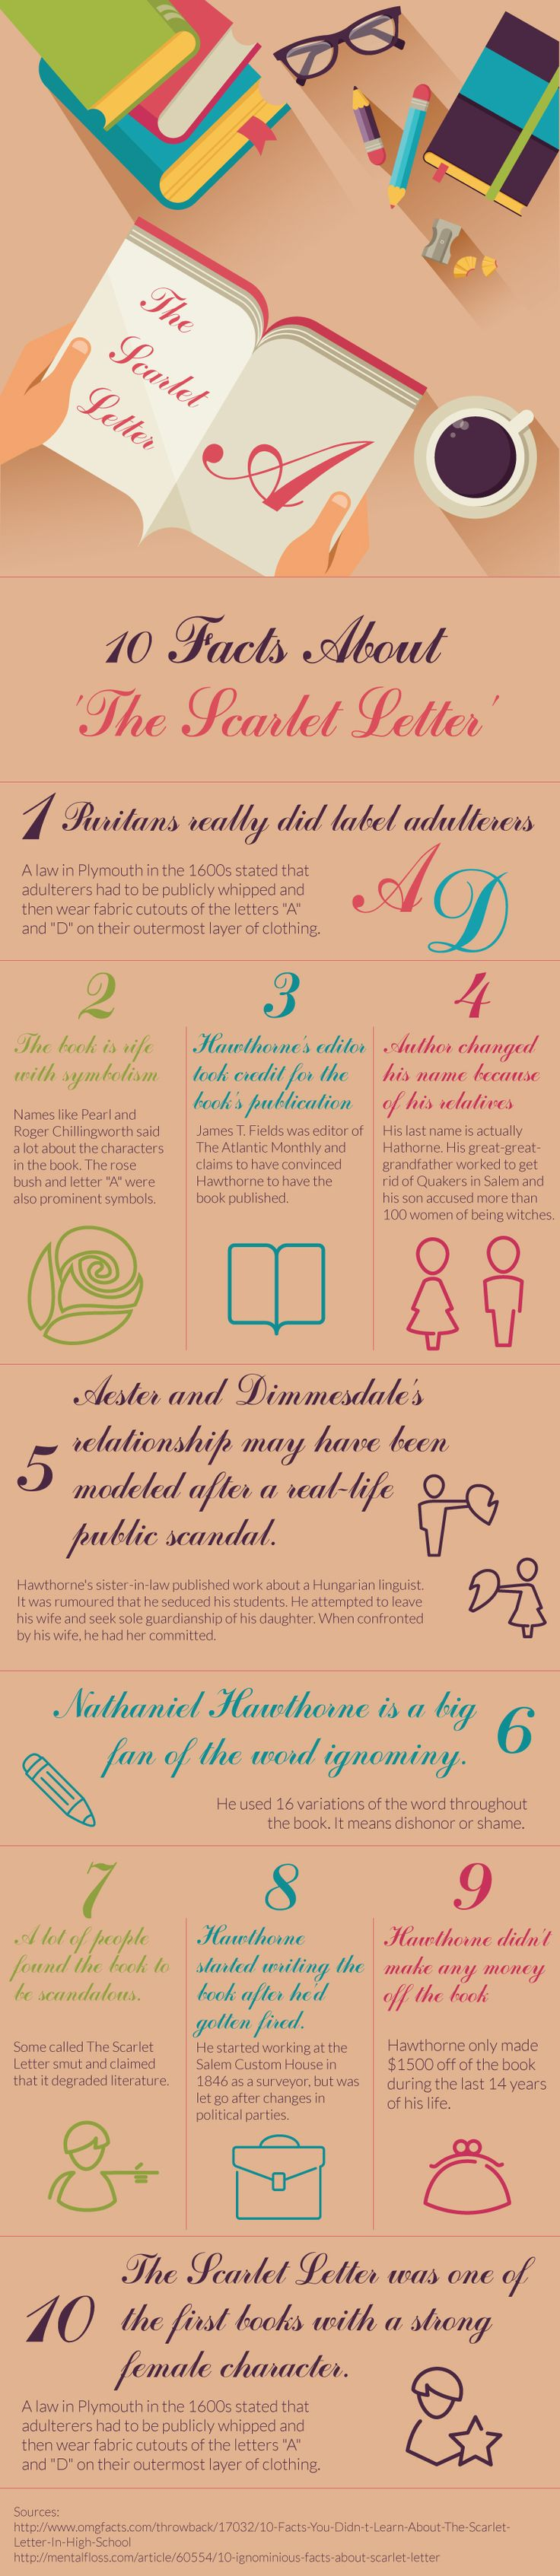 10 Facts About the Scarlet Letter